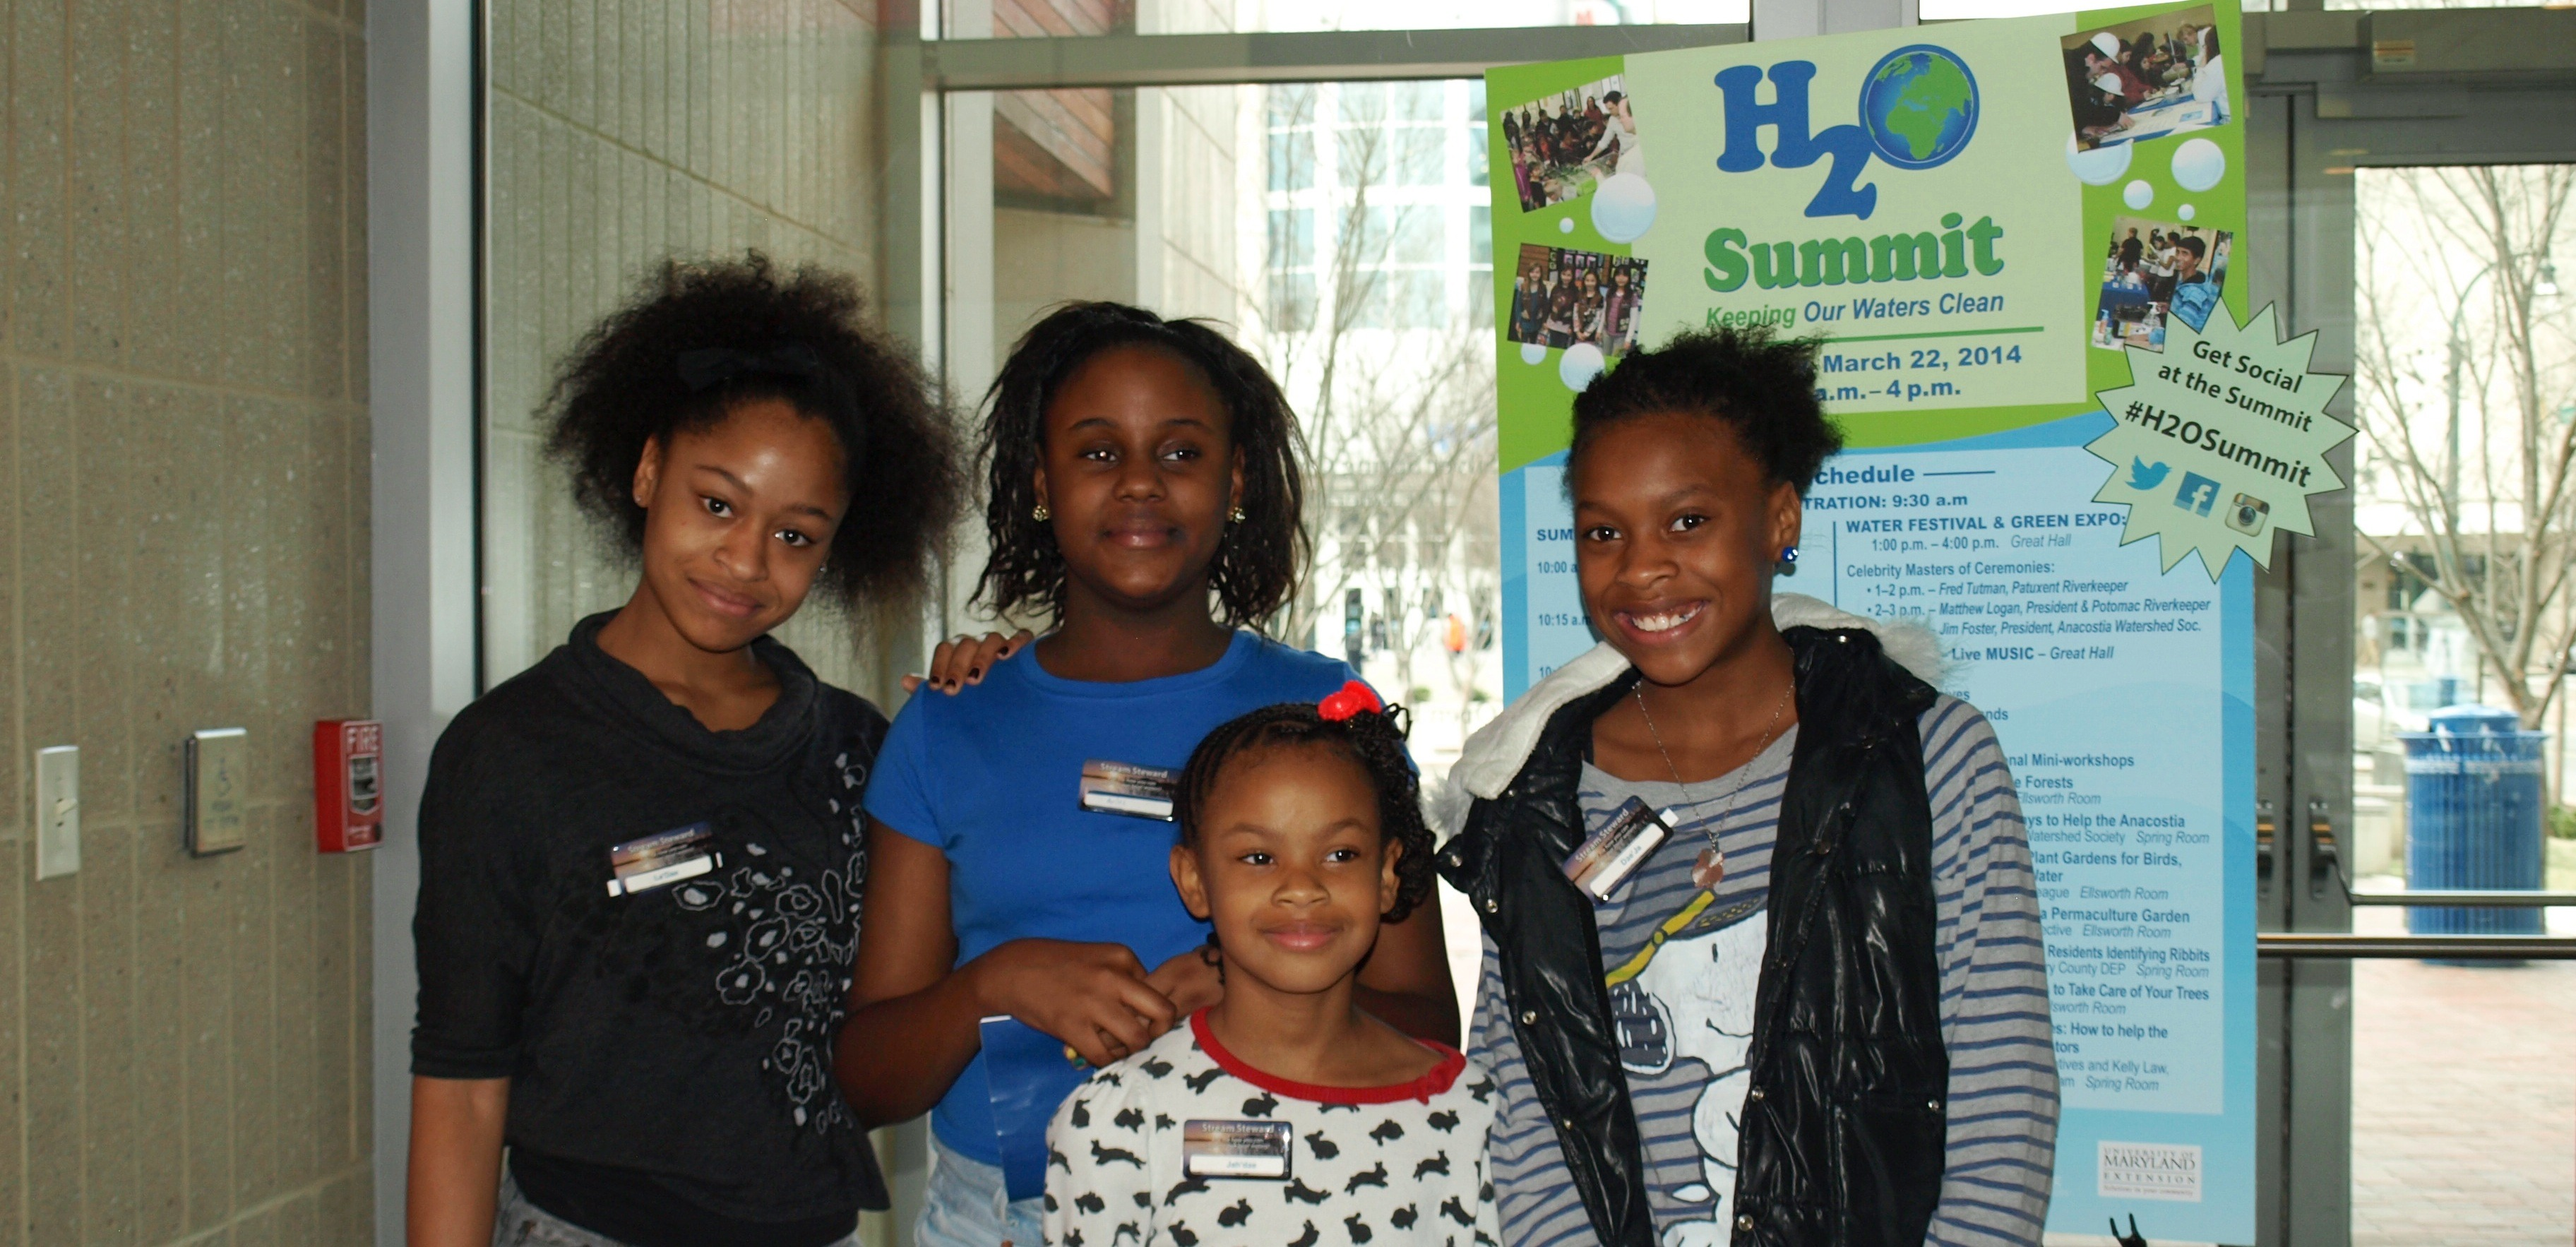 Image of volunteers from the H2O Summit